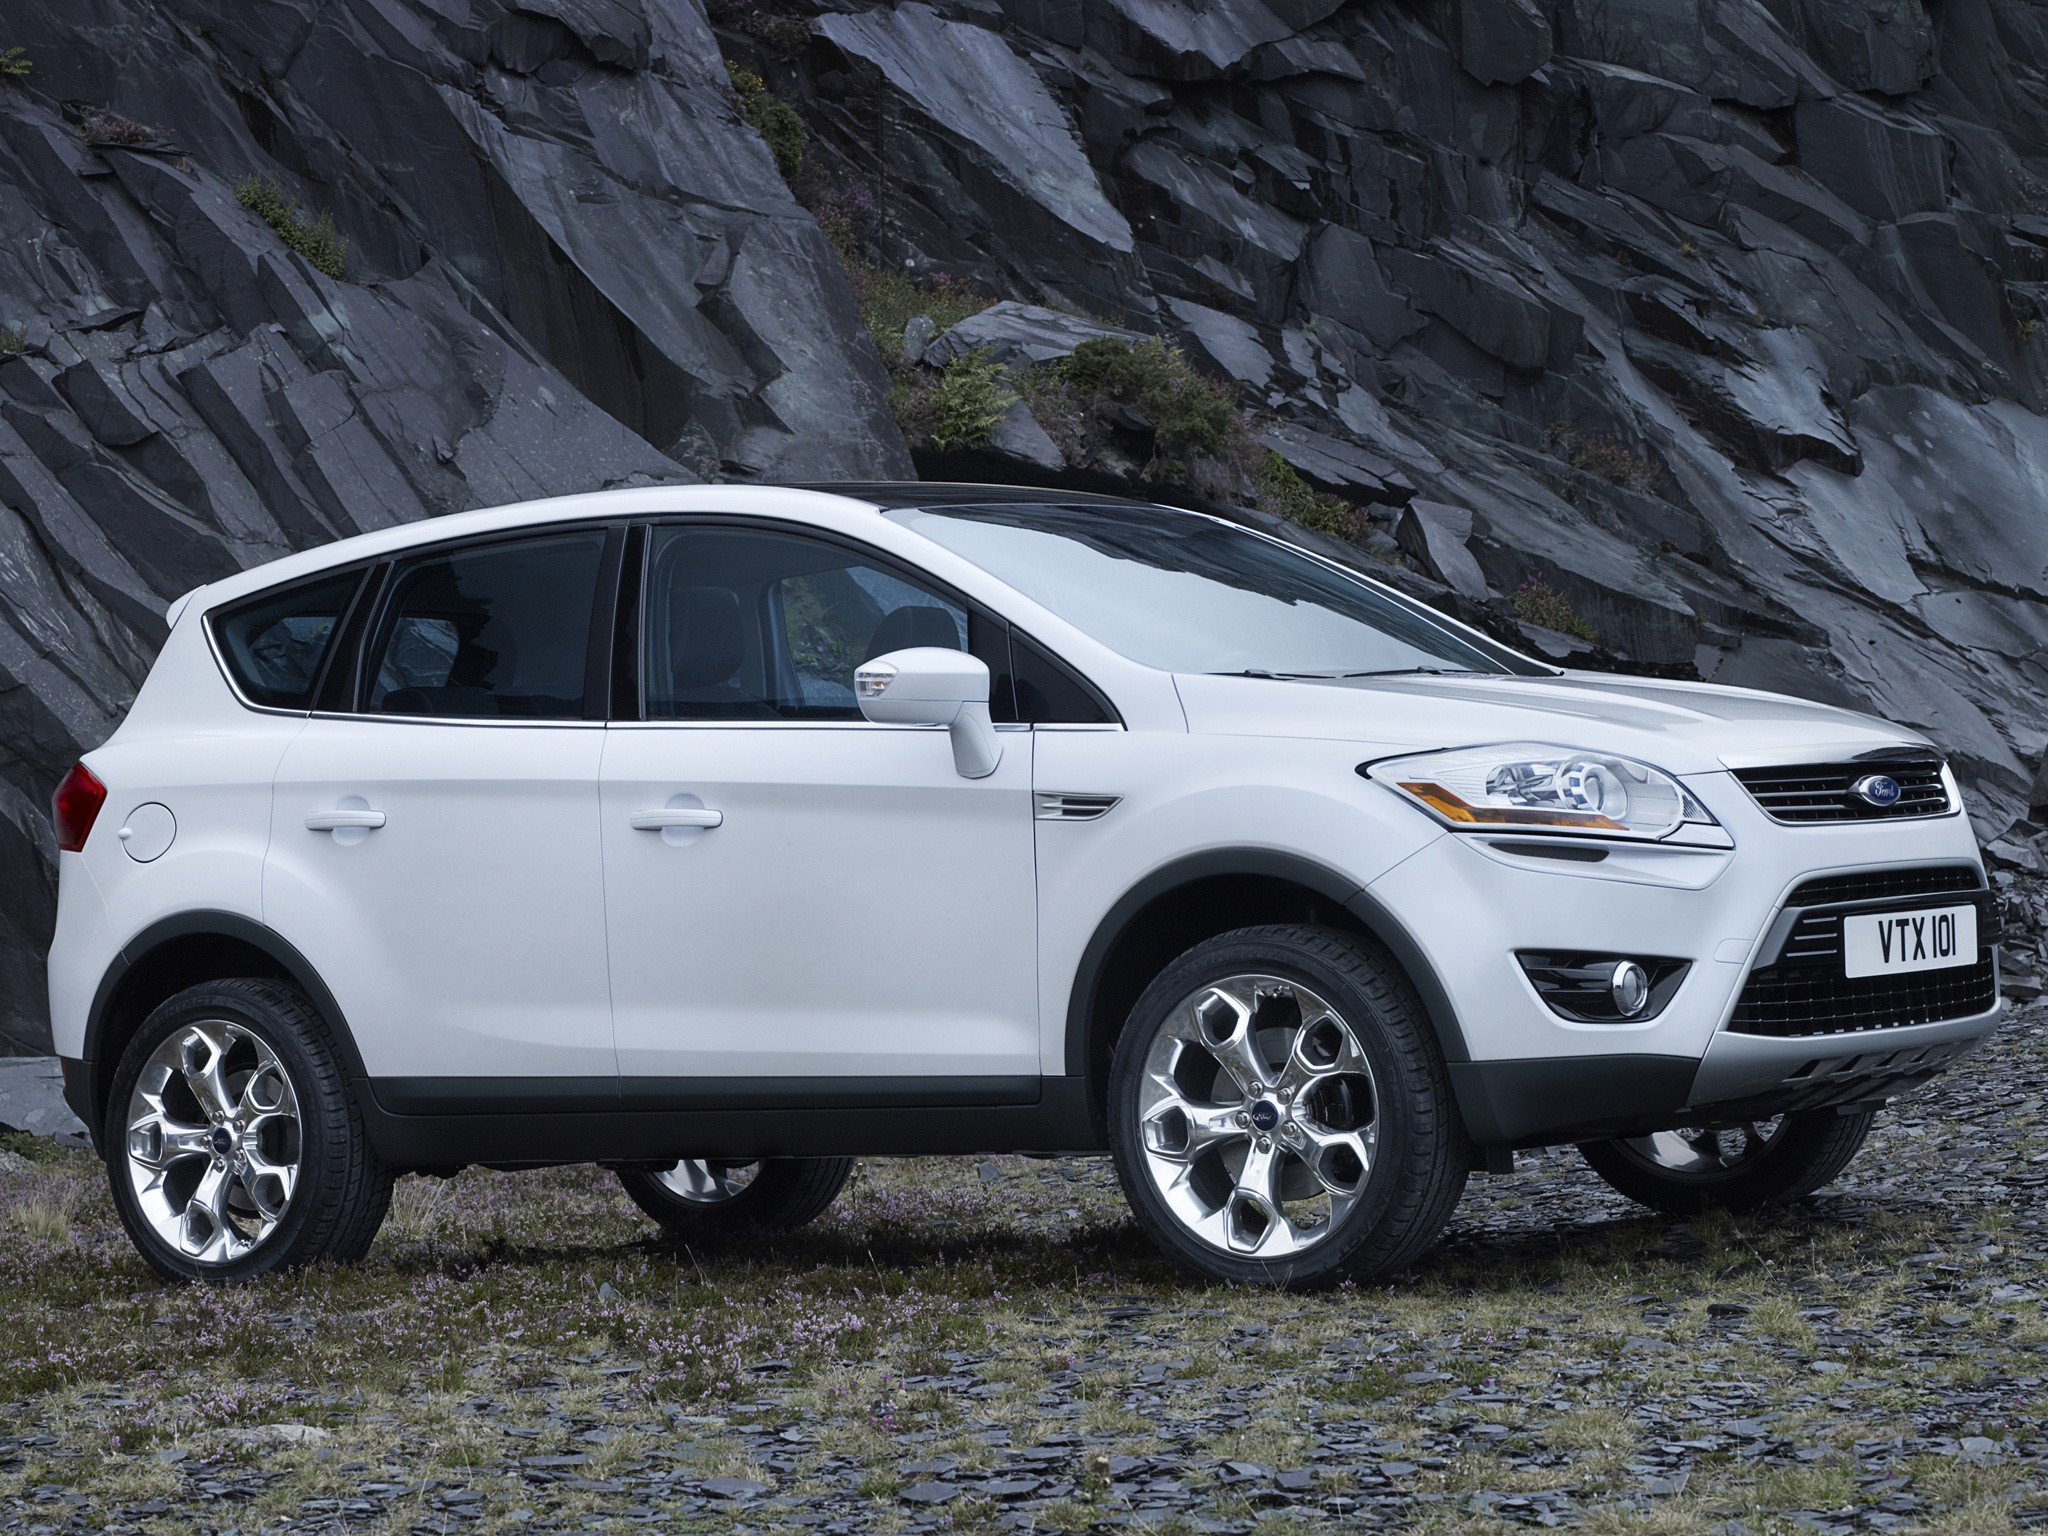 FORD Kuga - 2008, 2009, 2010, 2011, 2012 - autoevolution